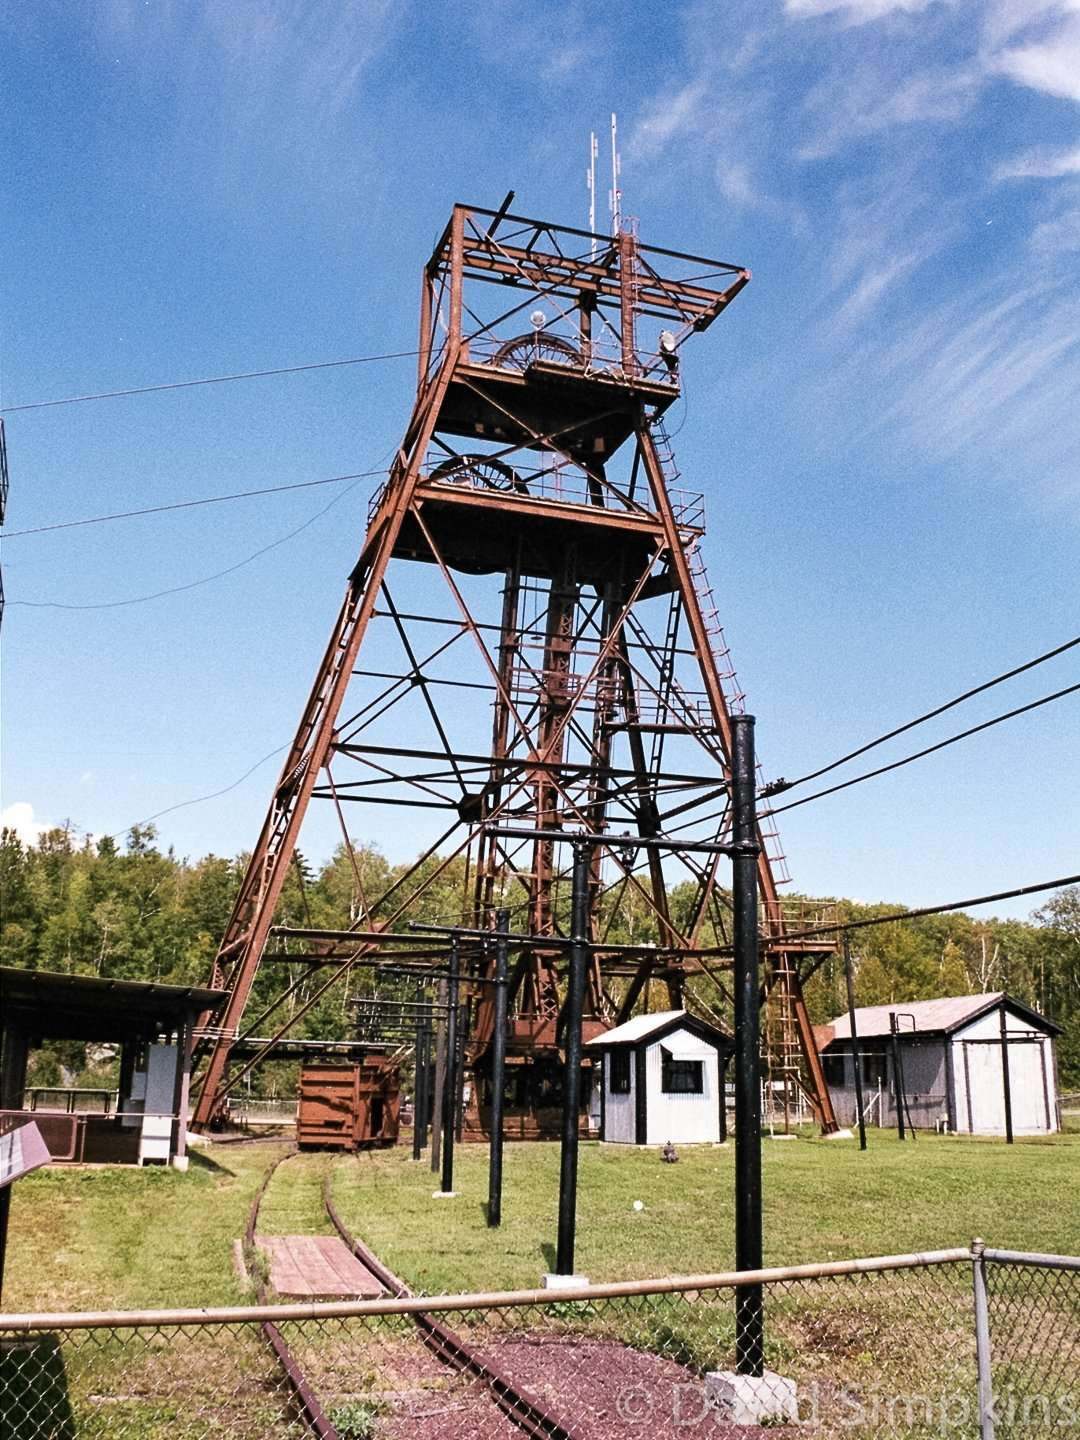 The old headframe of the former US Steel Mine at Lake Vermilion-Soudan Underground Mine State Park